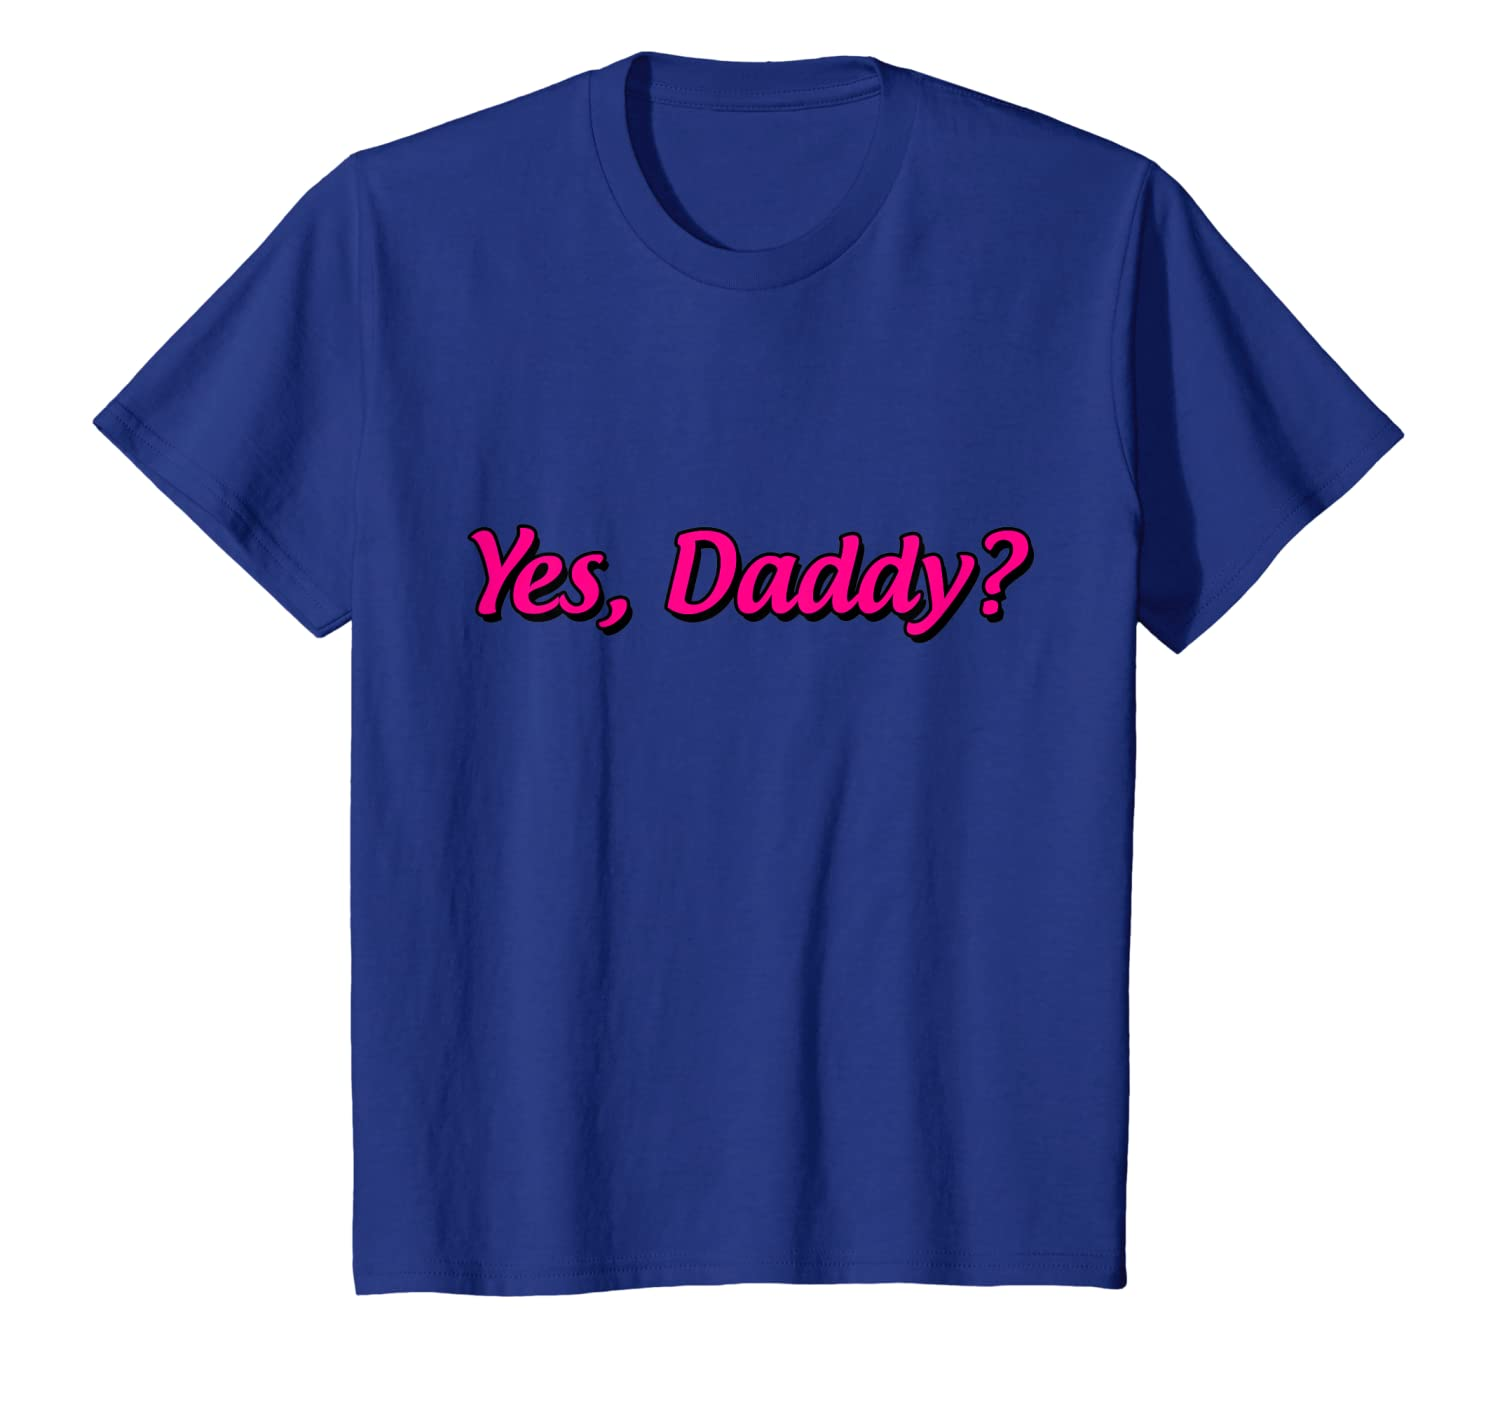 5d97f502 Amazon.com: Yes Daddy T-Shirt, Funny Daddy Shirt, Dad T Shirts: Clothing